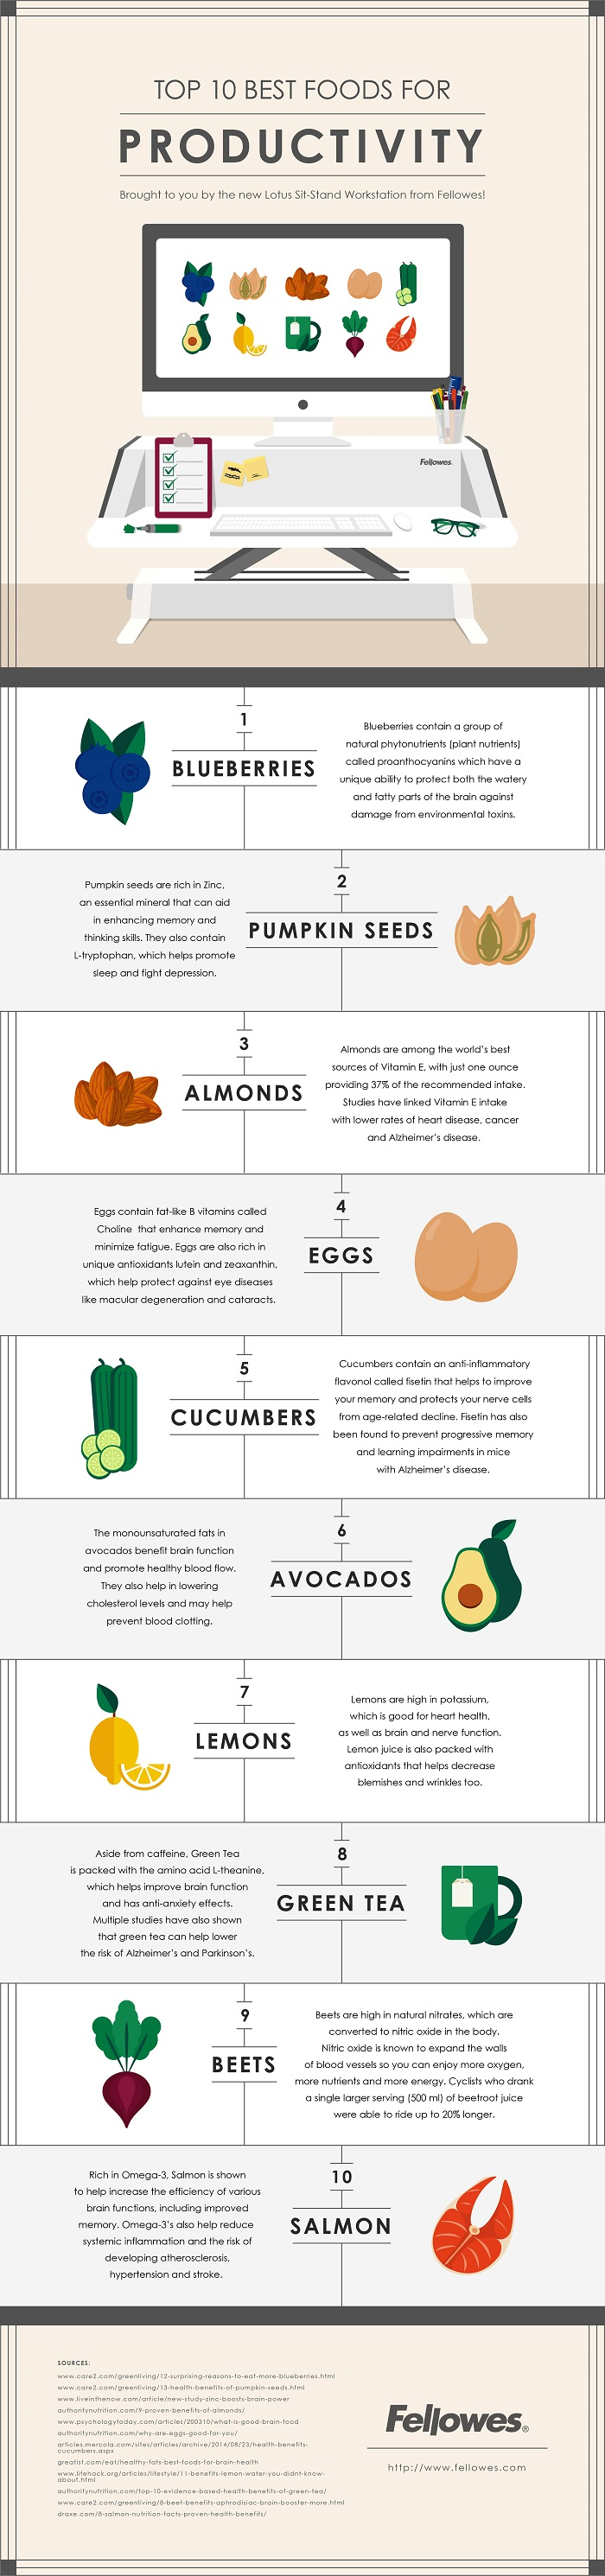 Top 10 Best Food for Productivity